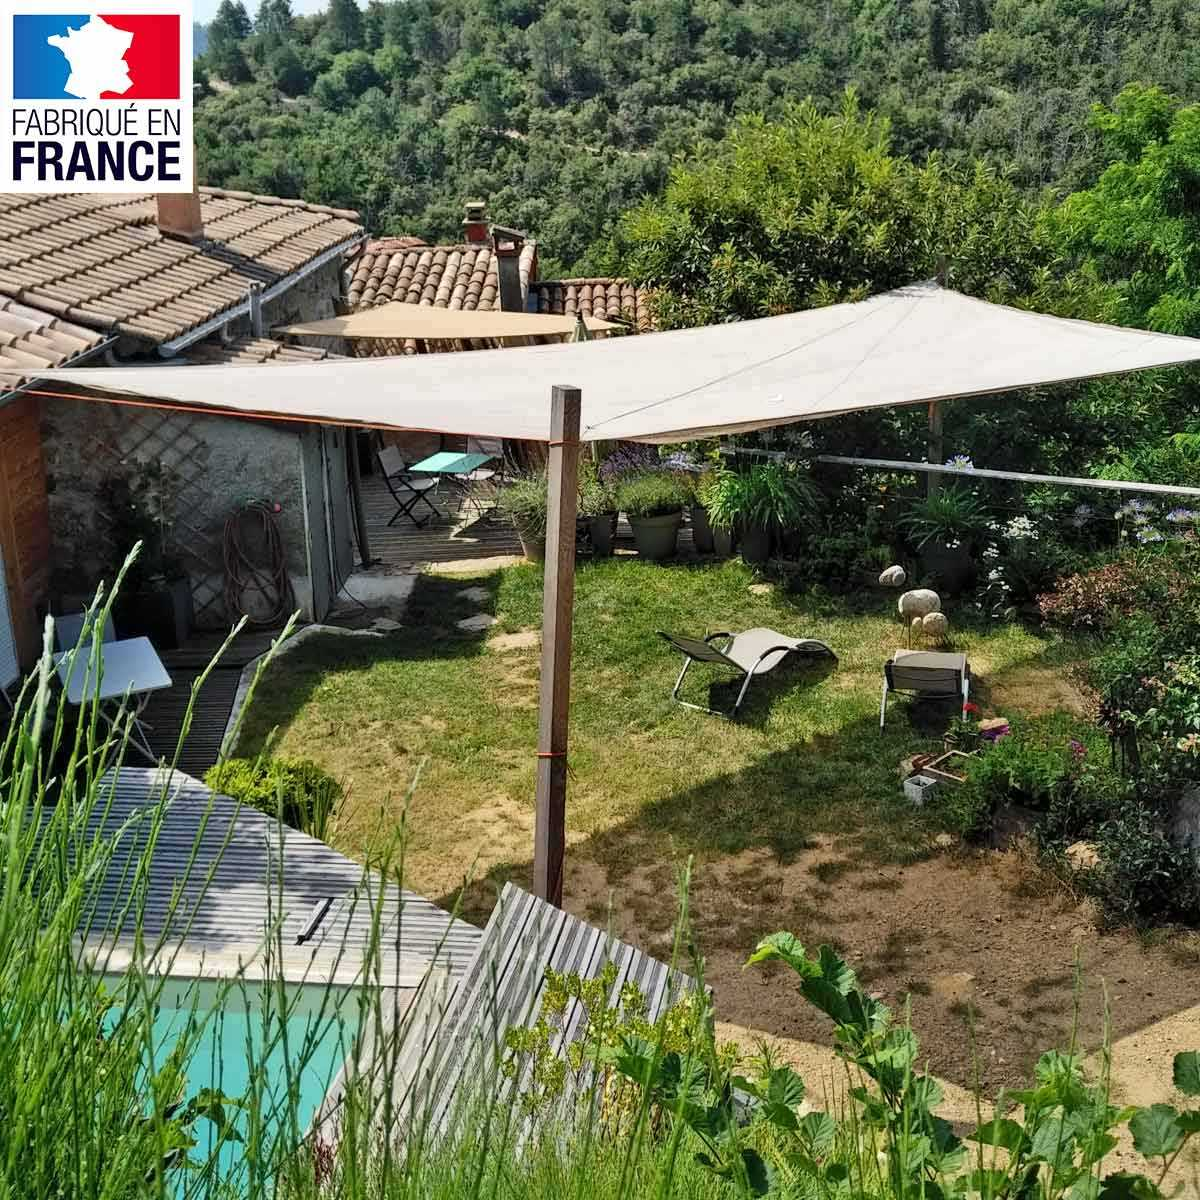 Voile D Ombrage Comment L Installer voile d'ombrage - filet de protection plantations et terrasse